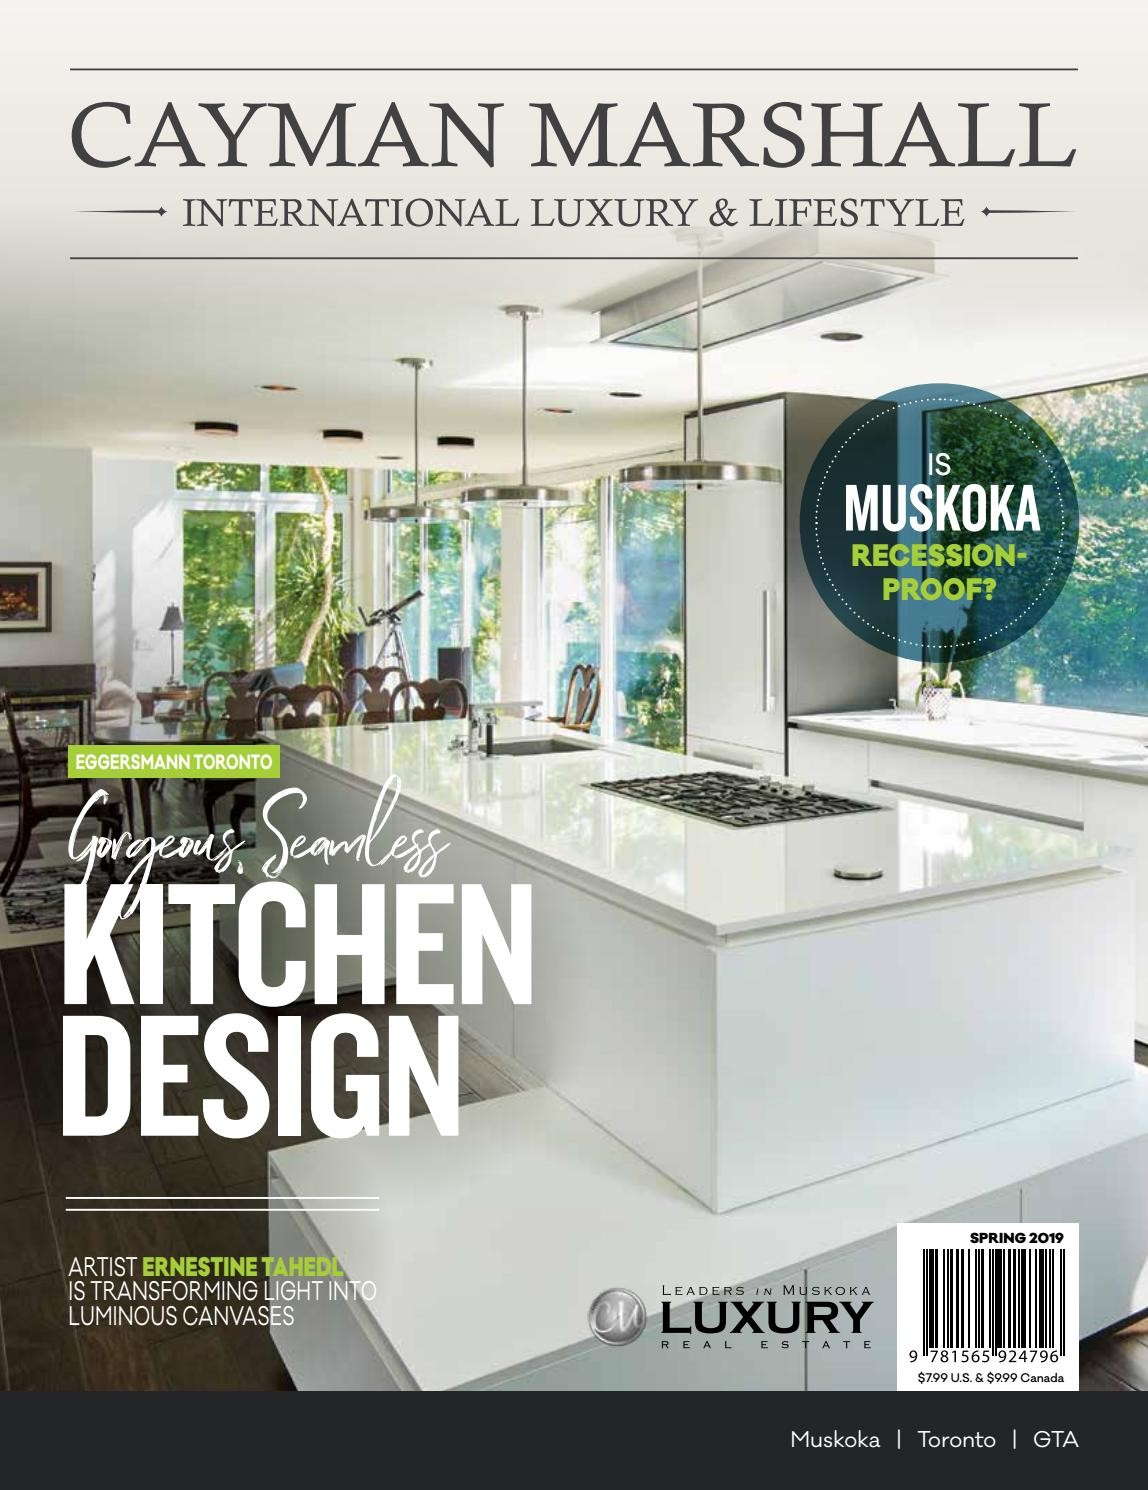 Front Cover of The Thoroughly Modern Log Home - Cayman Marshall Magazine - Spring 2019